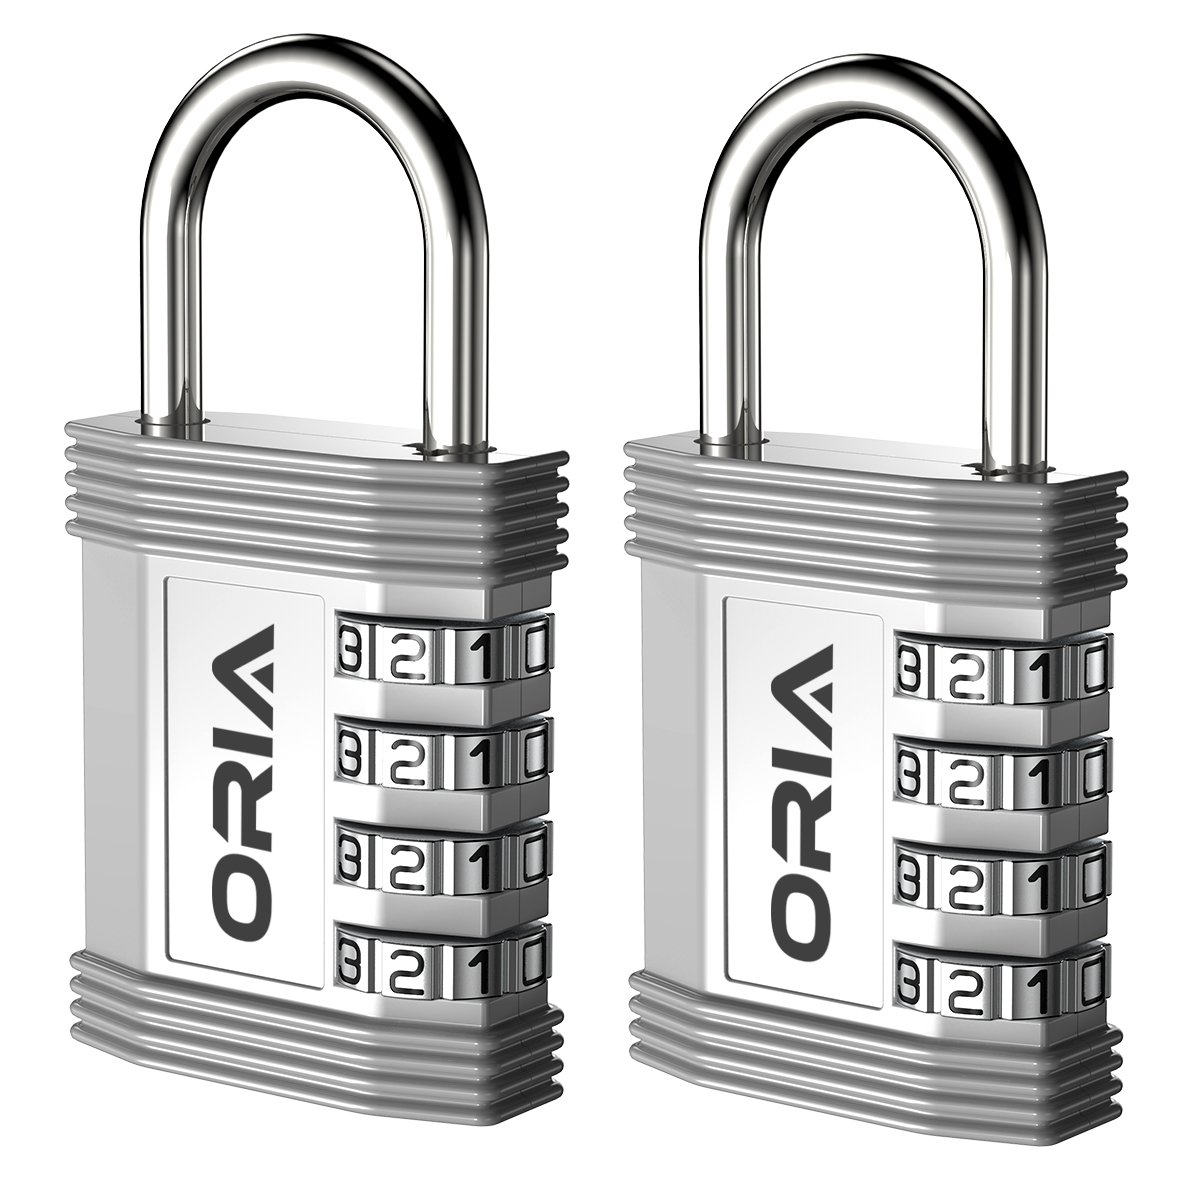 Filing Cabinets etc. Oria 2 Pack Combination lock Anti Rust and Waterproof Silver for School Gym /& Sports Locker Yellow Employee Resettable Security Locks Toolbox 4 Digit PadLock